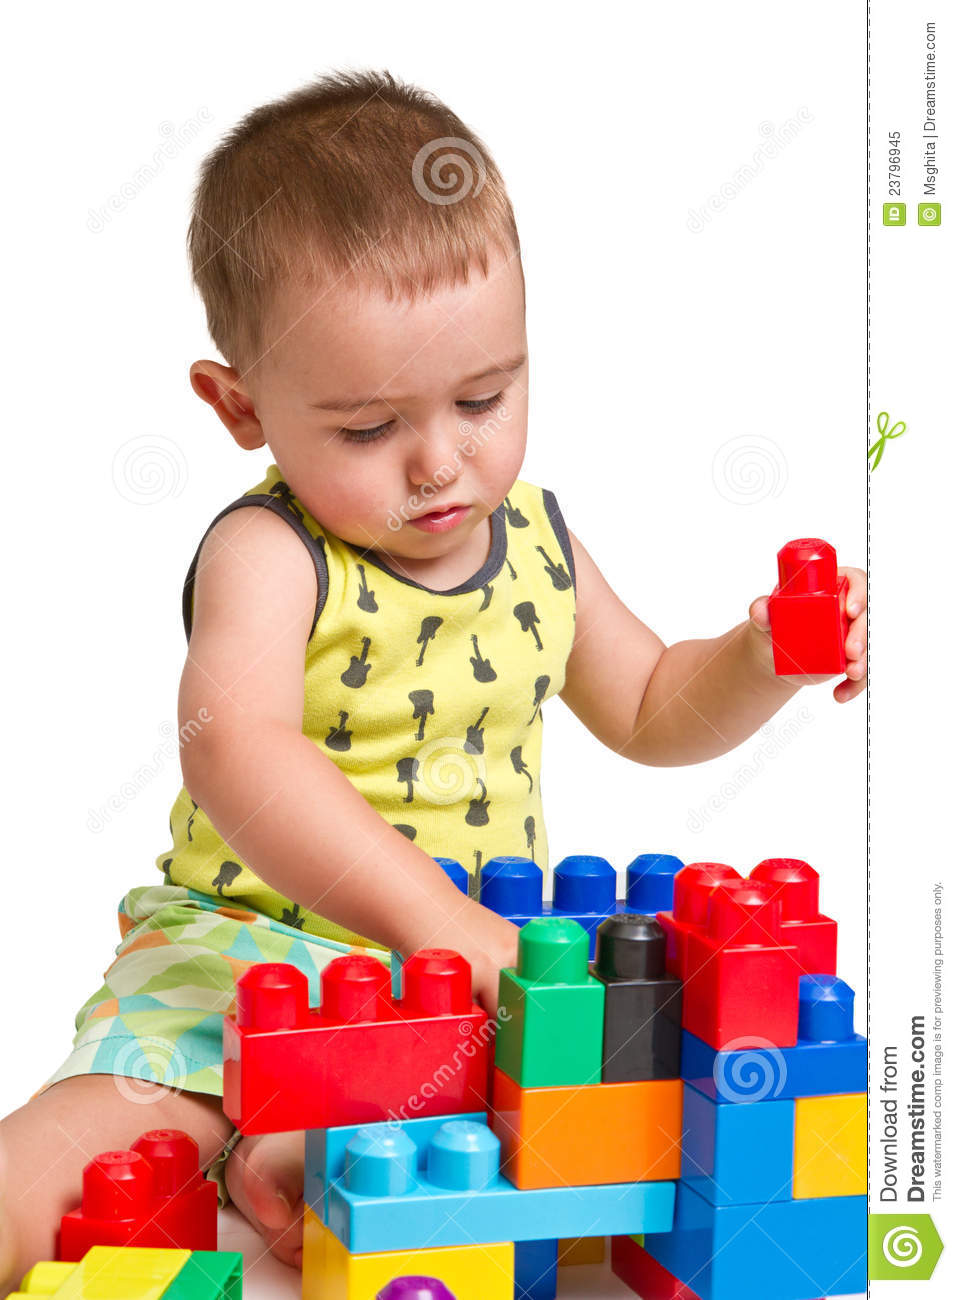 Toy Castles For Toddler Boys : Toddler building a castle royalty free stock photo image